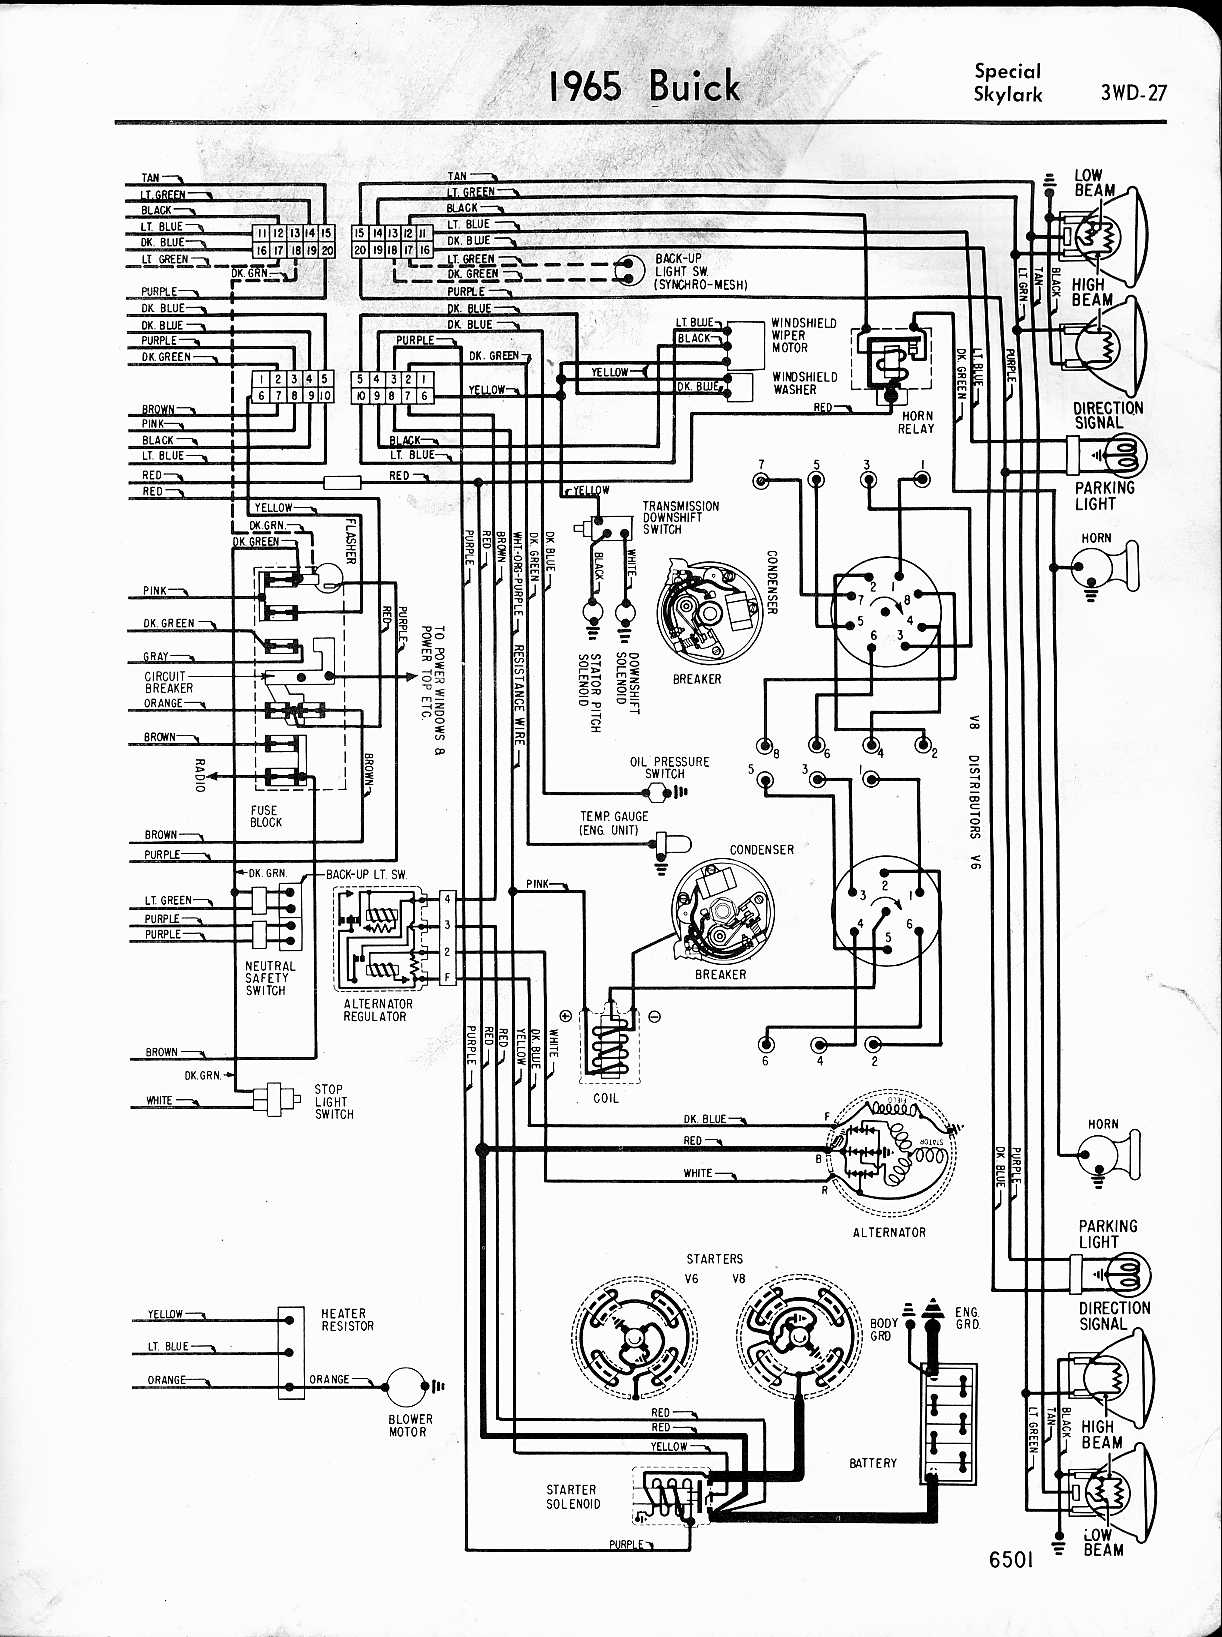 1236784 1968 F100 Turn Signals Working Like Hazards moreover Steering Suspension Diagrams also Tech eremeter moreover Tag Headlights likewise 1965 Mustang Steering Wheel Wiring Diagram. on 1965 ford brake switch diagram